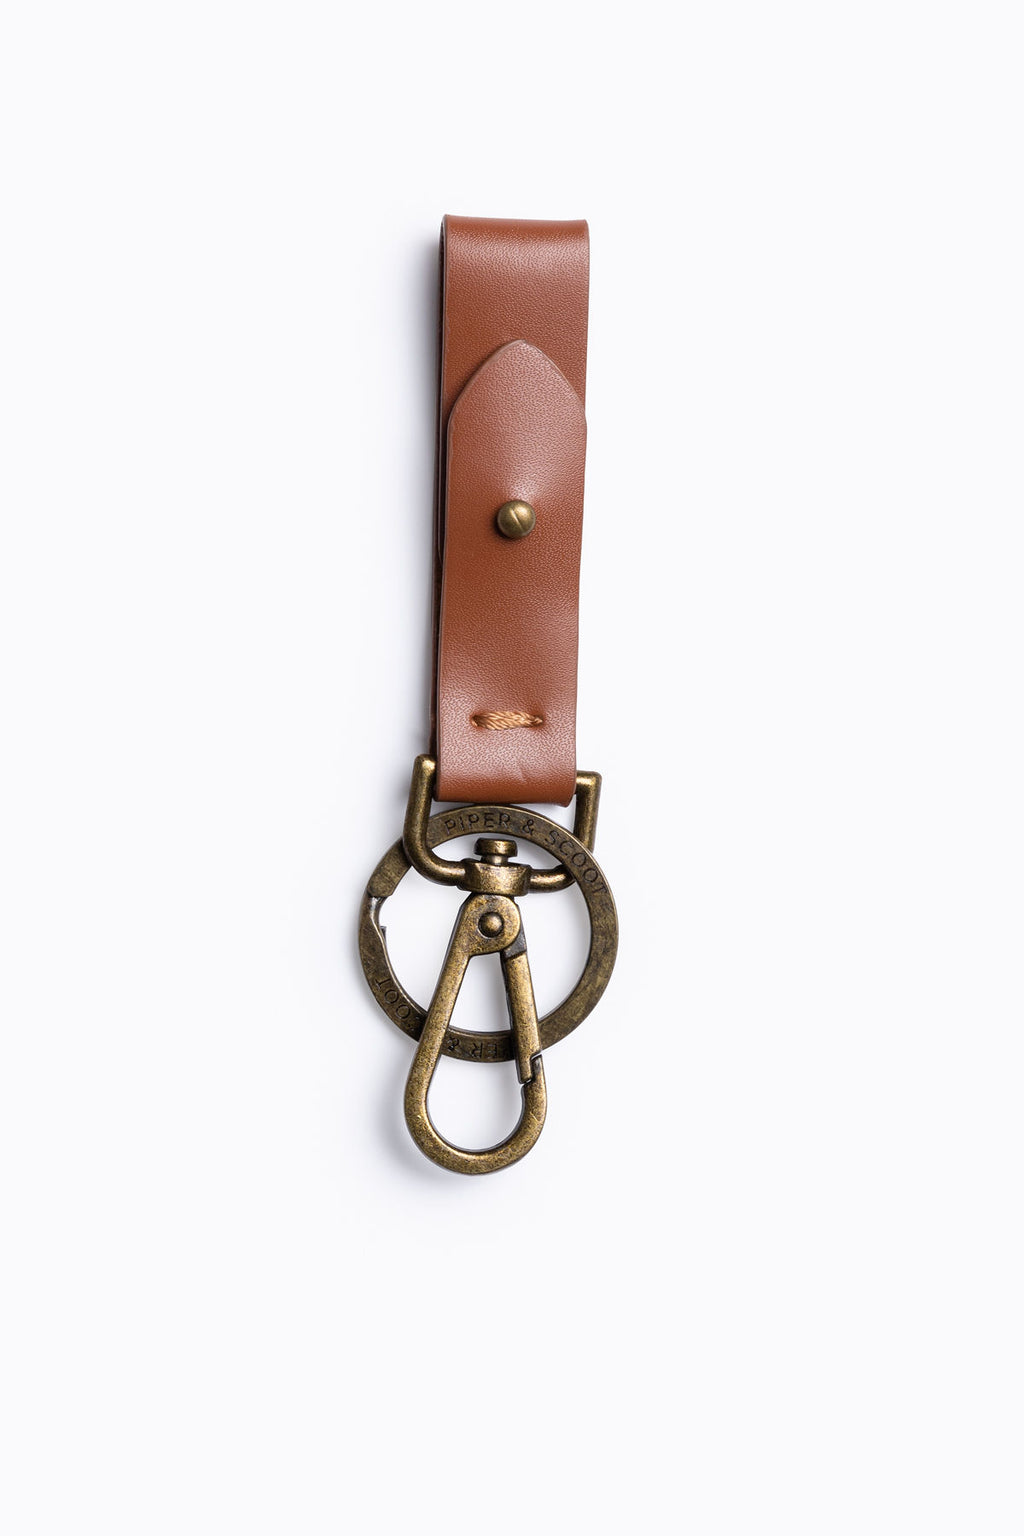 Piper & Scoot: Leather Key Fob